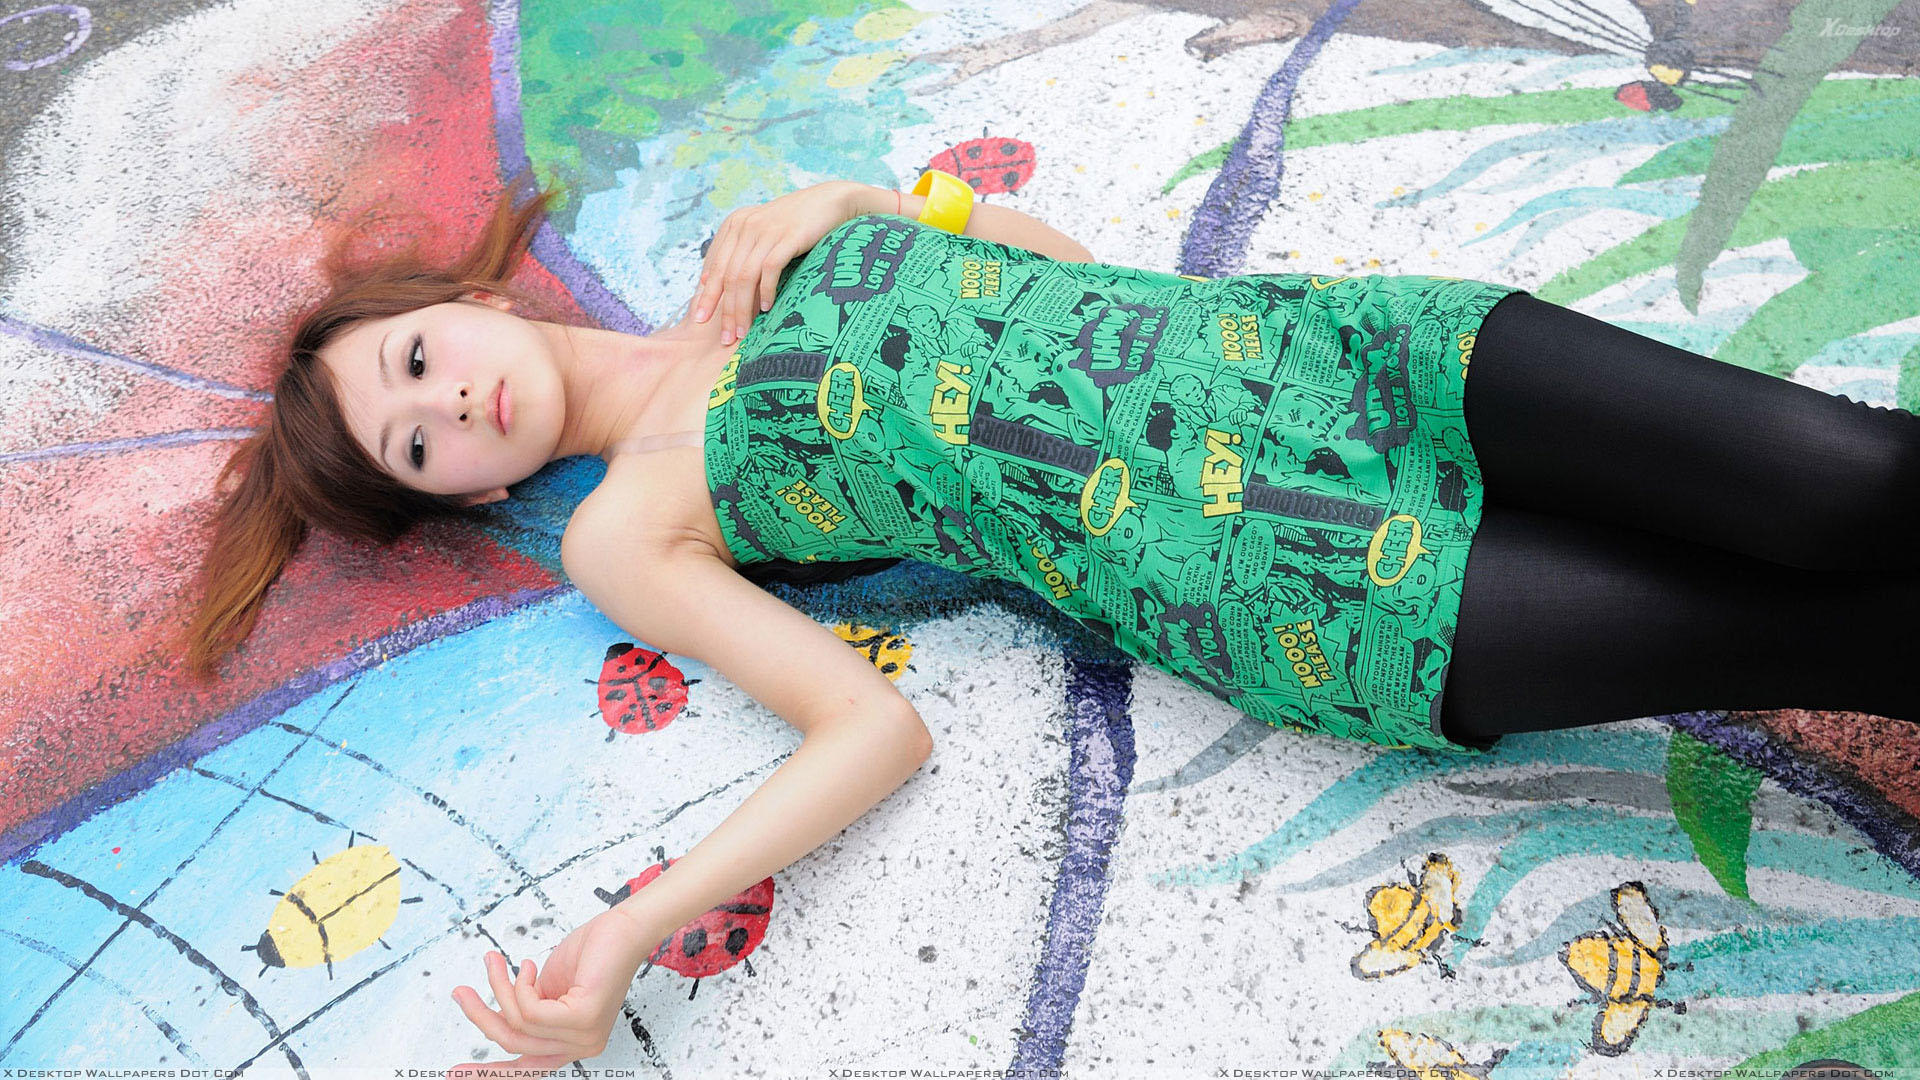 Asian Girl Laying On Sketchy Colorful Ground Wallpaper